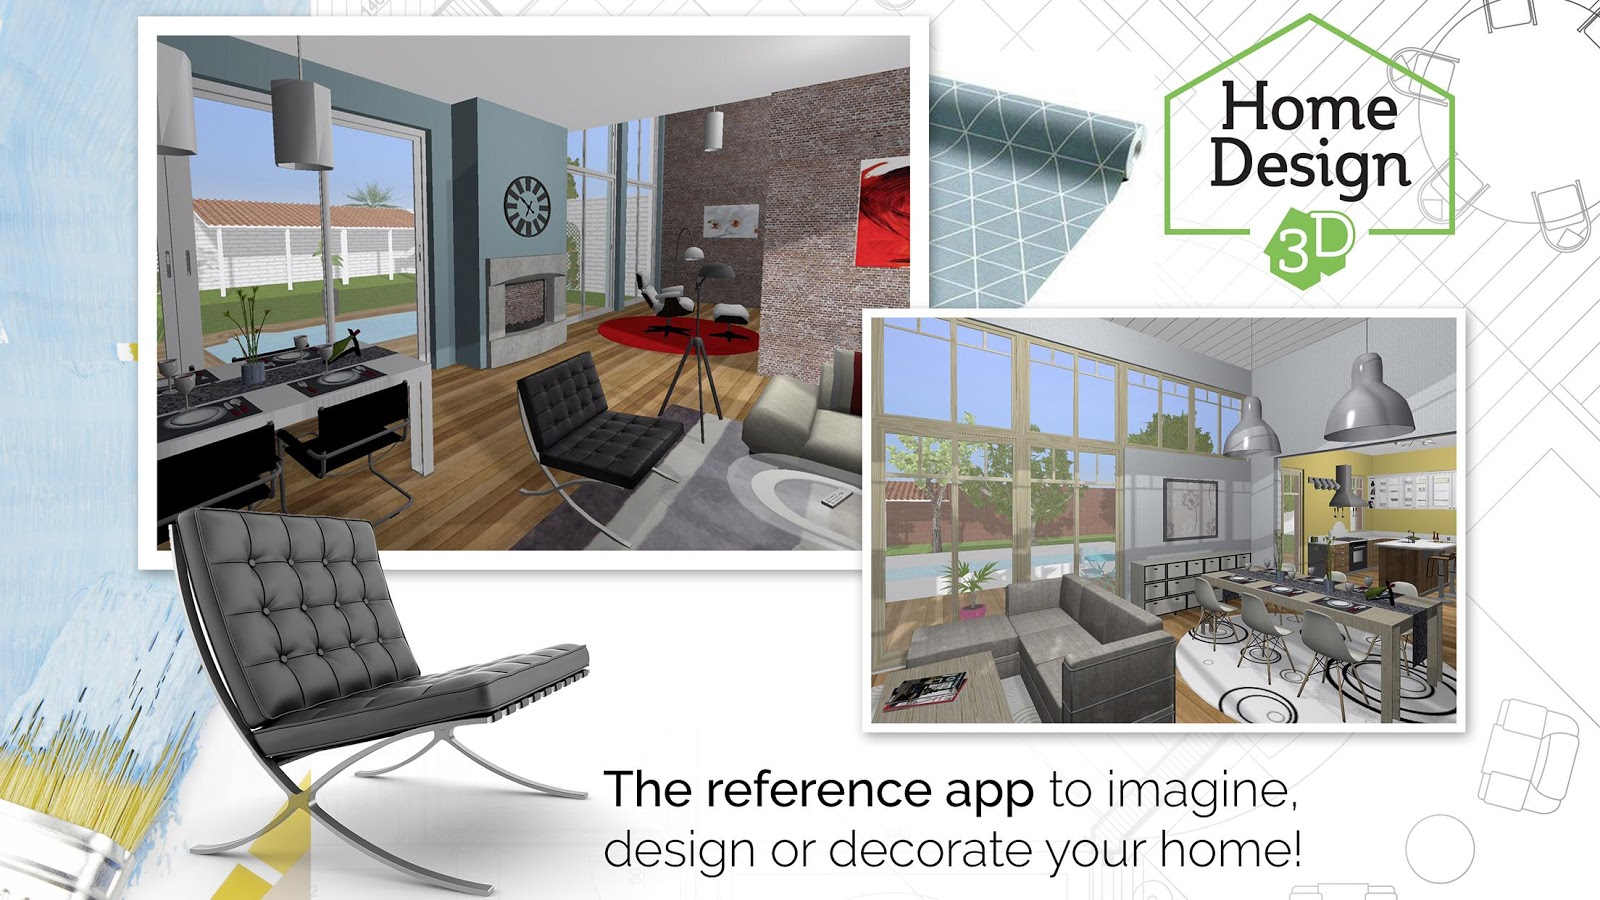 Home Design 3DFREEMIUMAndroid Apps on Google Play